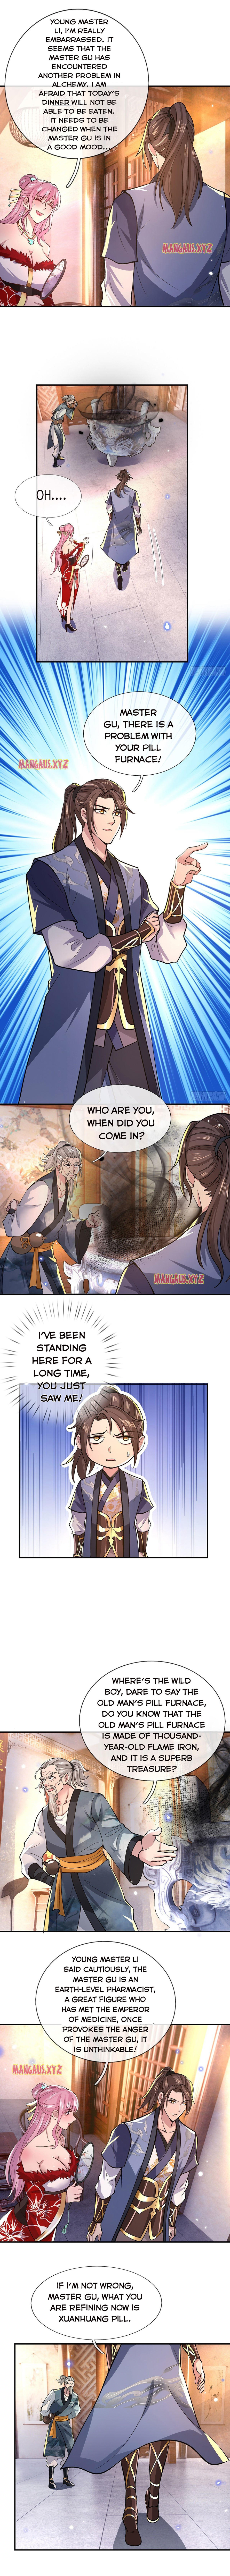 I Return From The Heaven And Worlds Chapter 35 page 2 - Mangakakalots.com